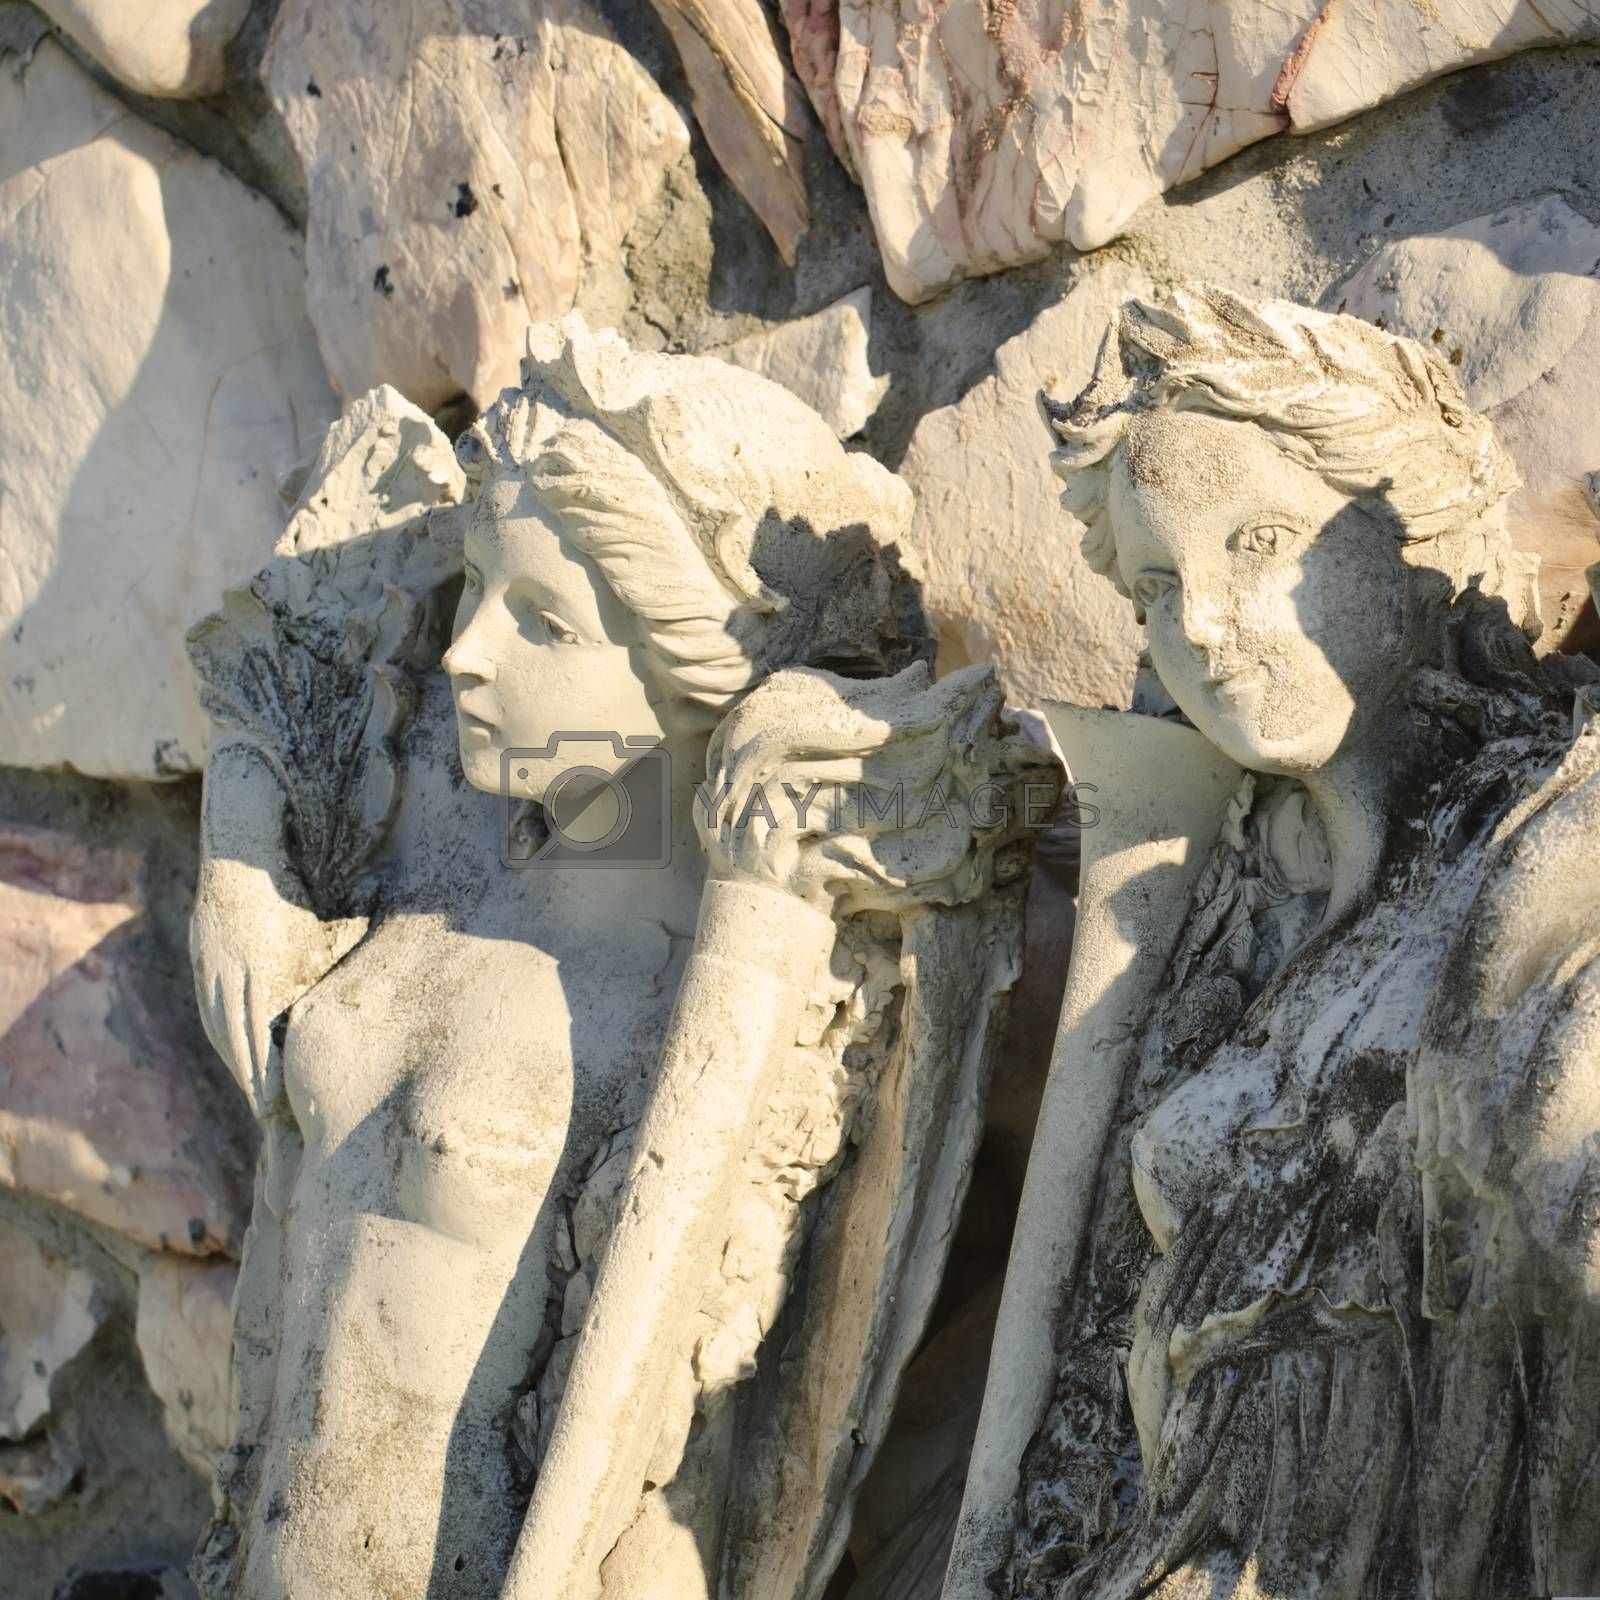 Photo of the Vintage Old Woman Stone Sculptures